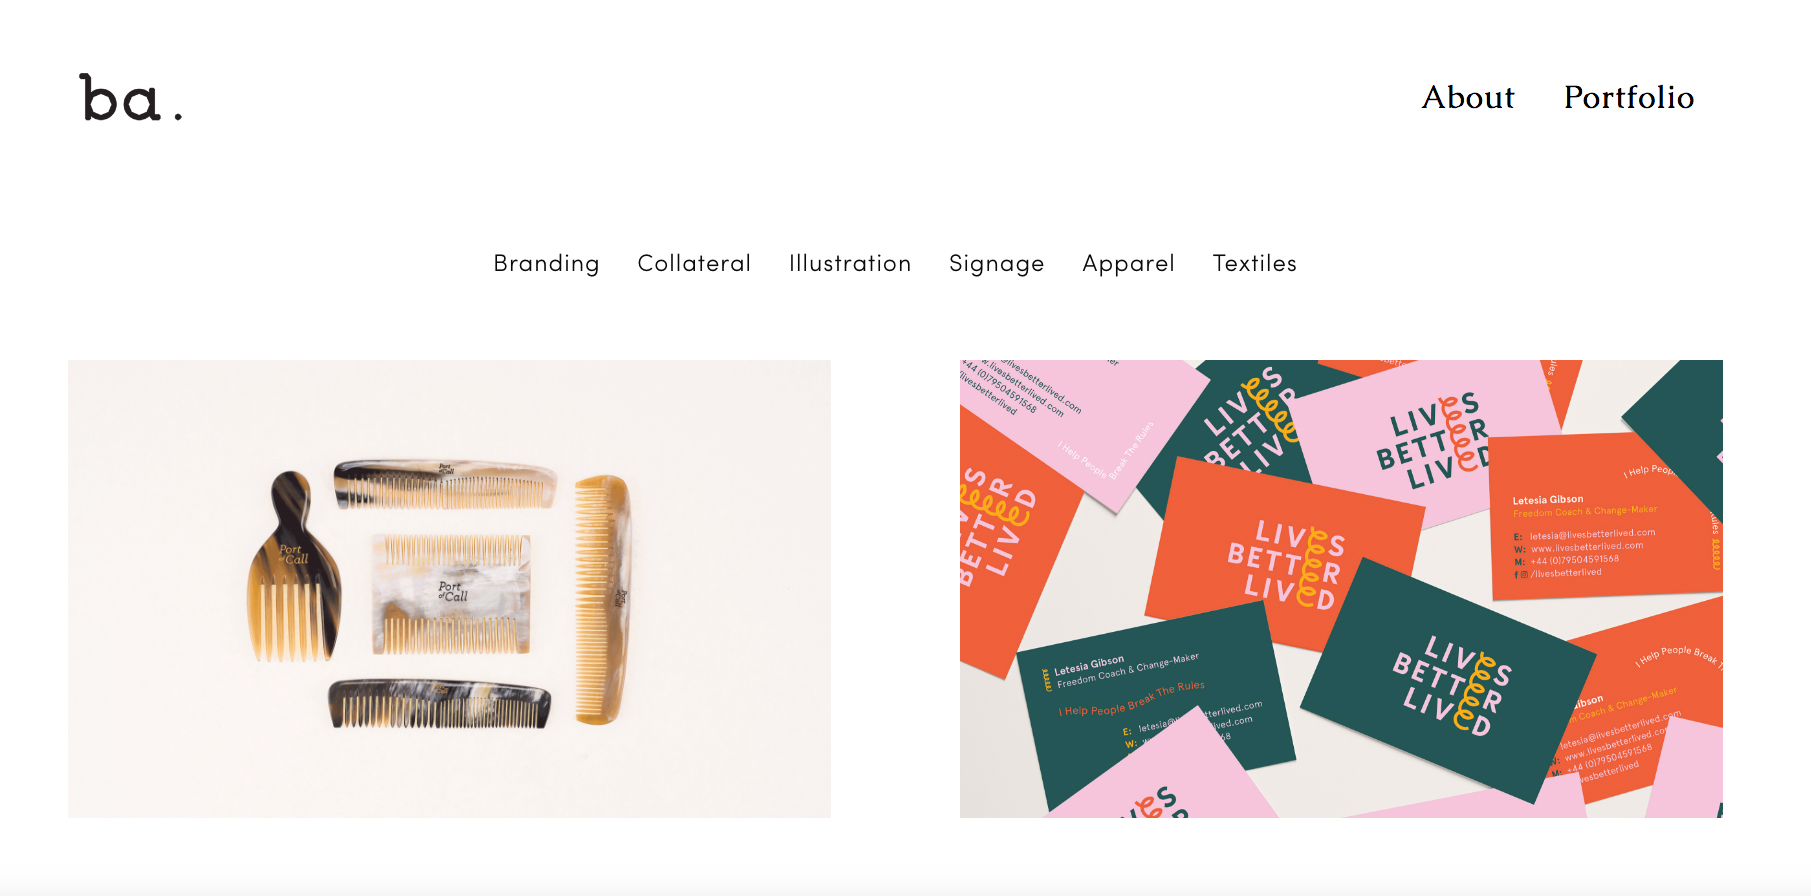 Becca Allen's website showing 2 pictures: a formation of combs and some business cards